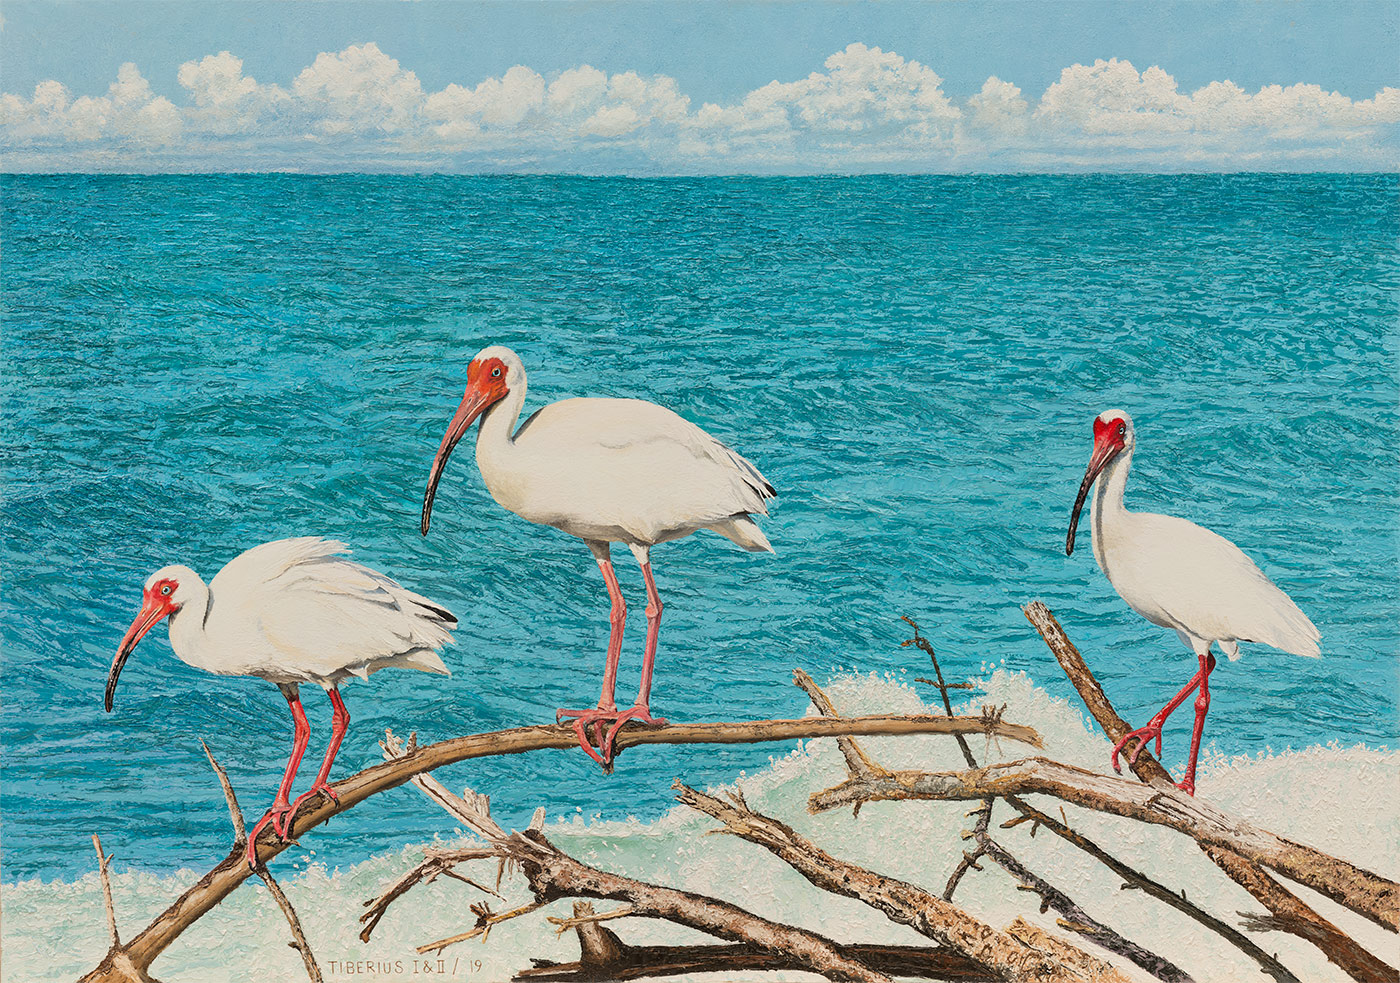 Three Ibises on Driftwood | Kiry Tiberius & Richard Tiberius